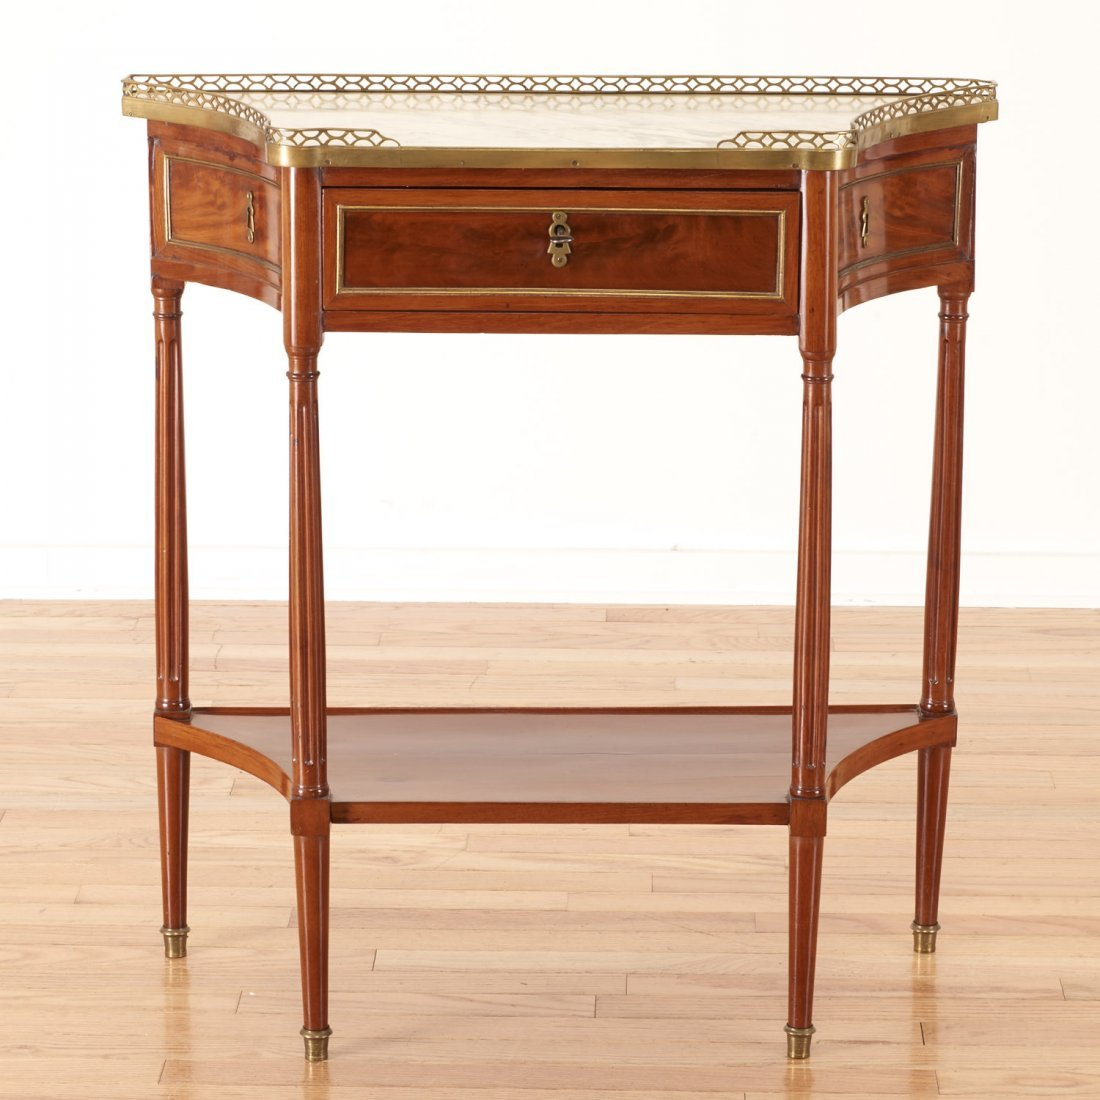 Louis XVI style brass mounted mahogany side table